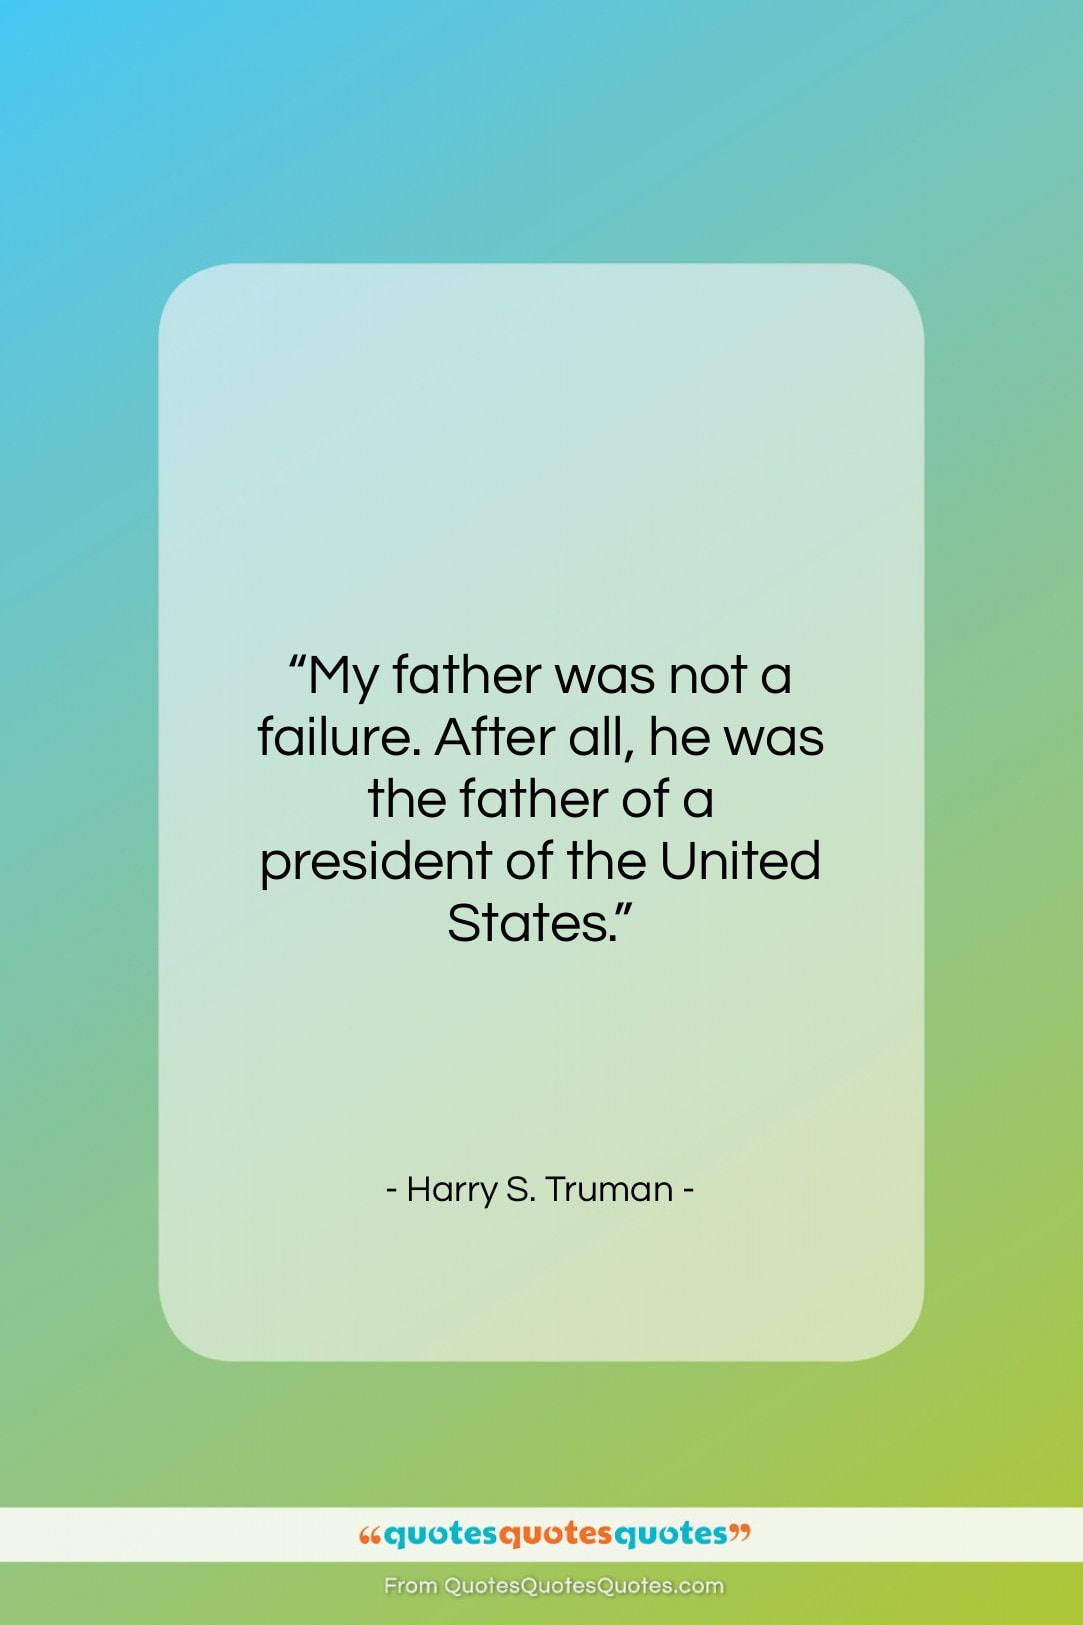 """Harry S. Truman quote: """"My father was not a failure. After…""""- at QuotesQuotesQuotes.com"""